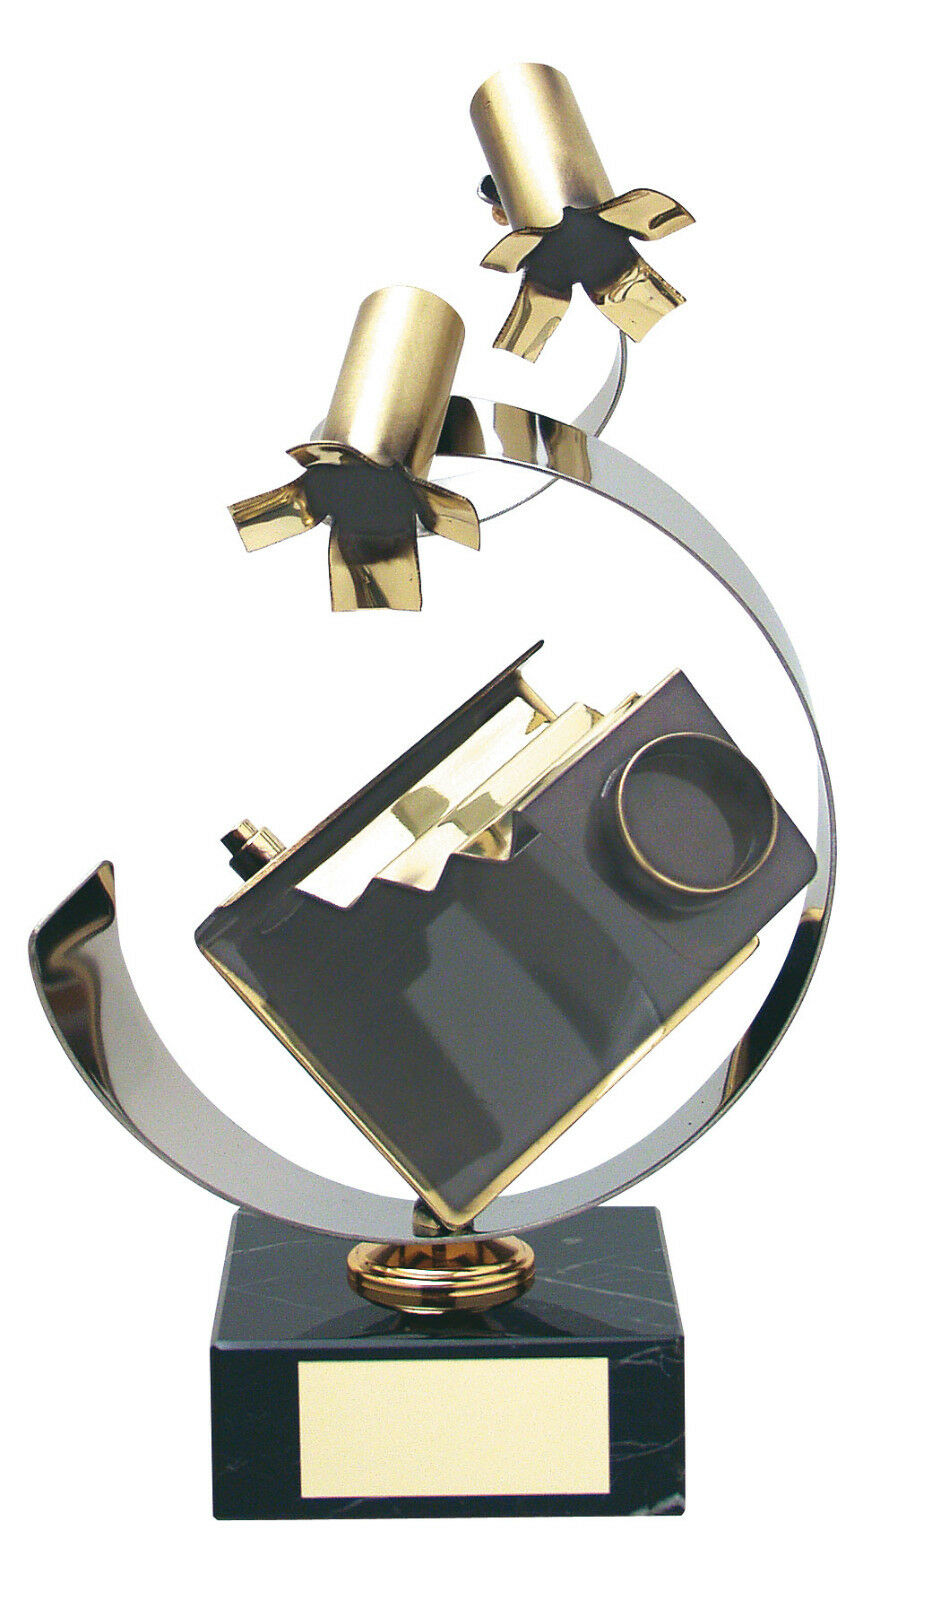 HANDMADE METAL CAMERA PHOTOGRAPHY TROPHY GIFT QUALITY FREE POSTAGE & ENGRAVING